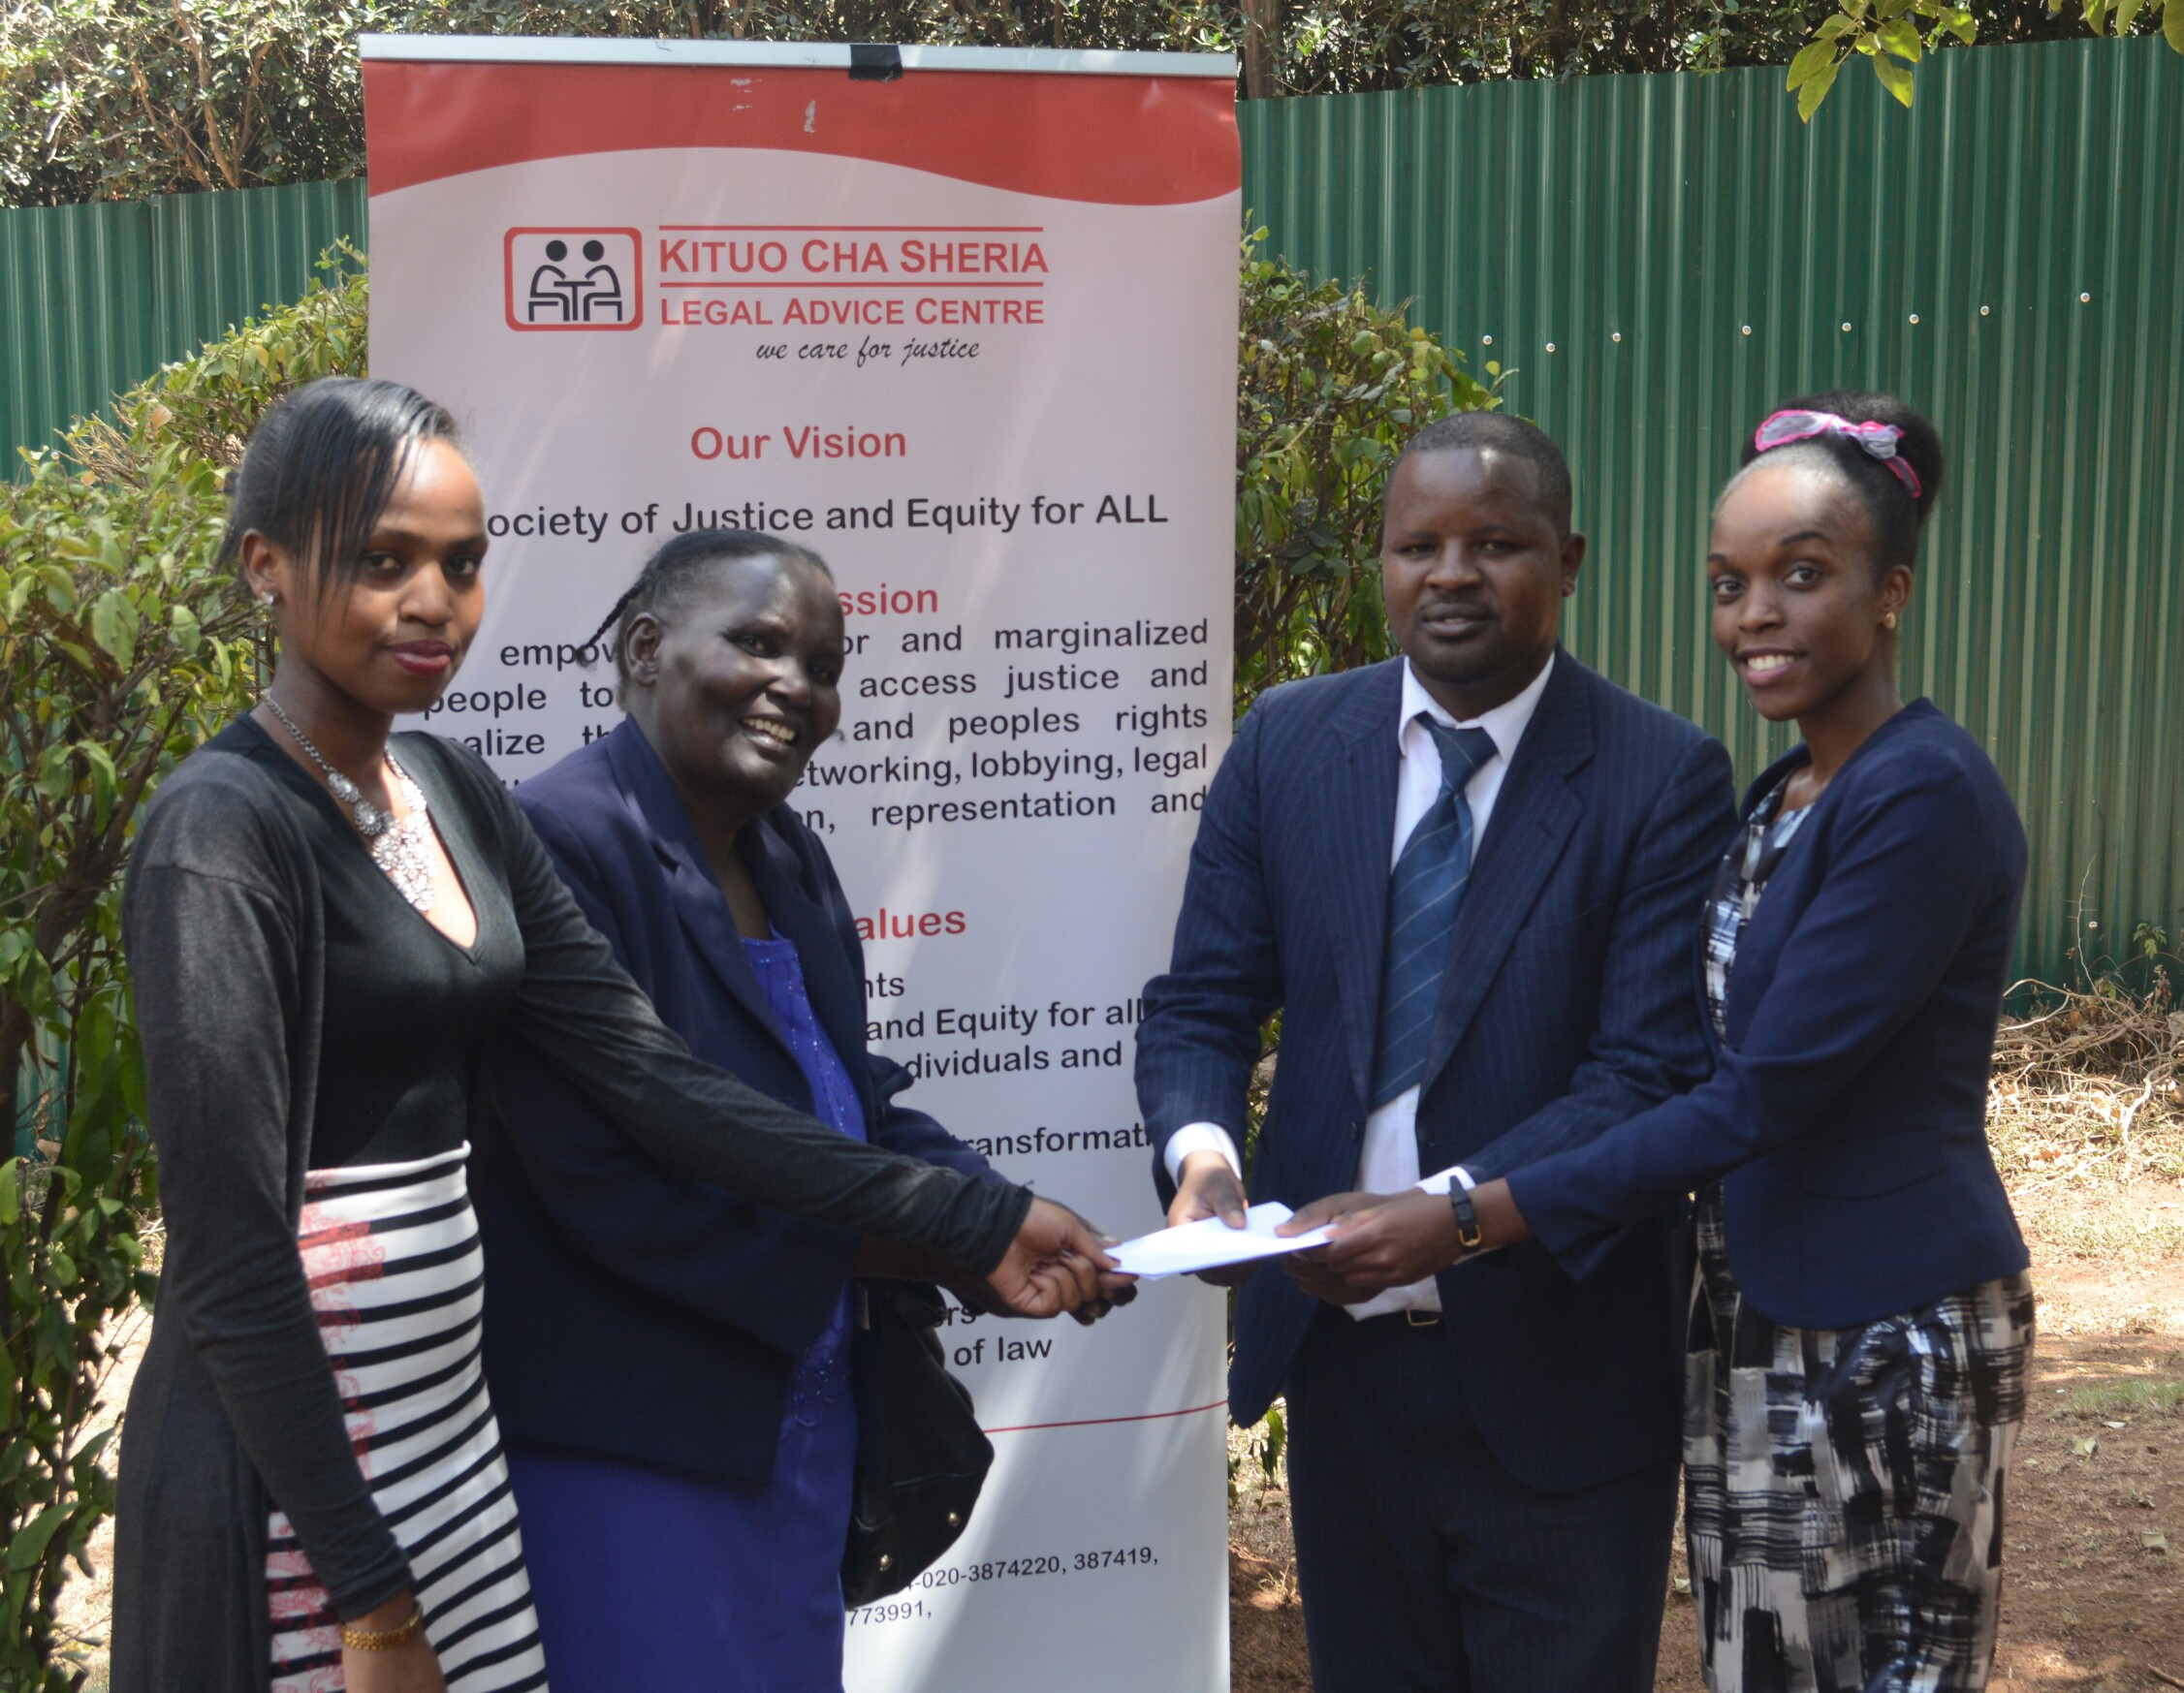 John Mwariri handing over the court judgement to Mary Nduku